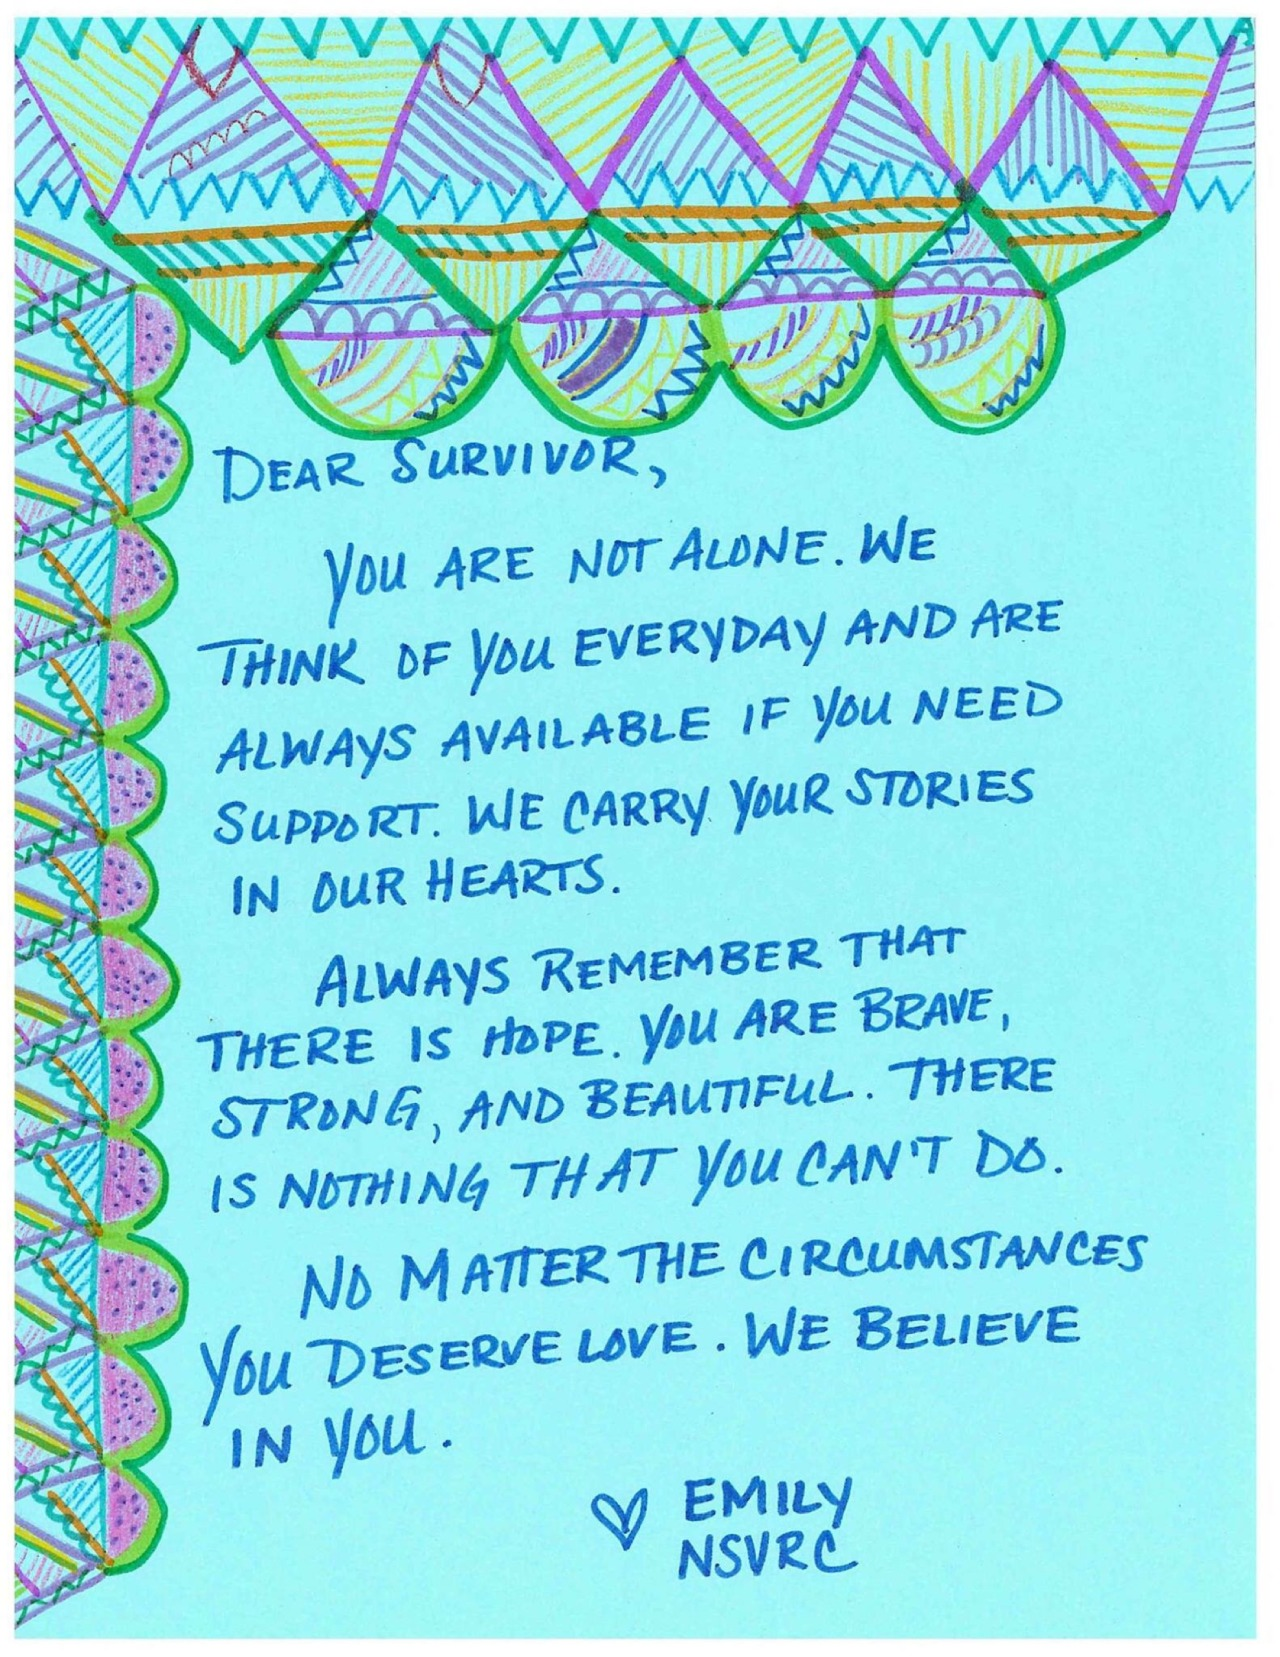 Dear Survivor,  You are not alone. We think of you everyday and are always available if you need support. We carry your stories in our hearts.  Always remember that there is hope. You are brave, strong and beautiful. There is nothing that you can't do.  No matter the circumstances you deserve love. We believe in you.  Love, Emily  NSVRC